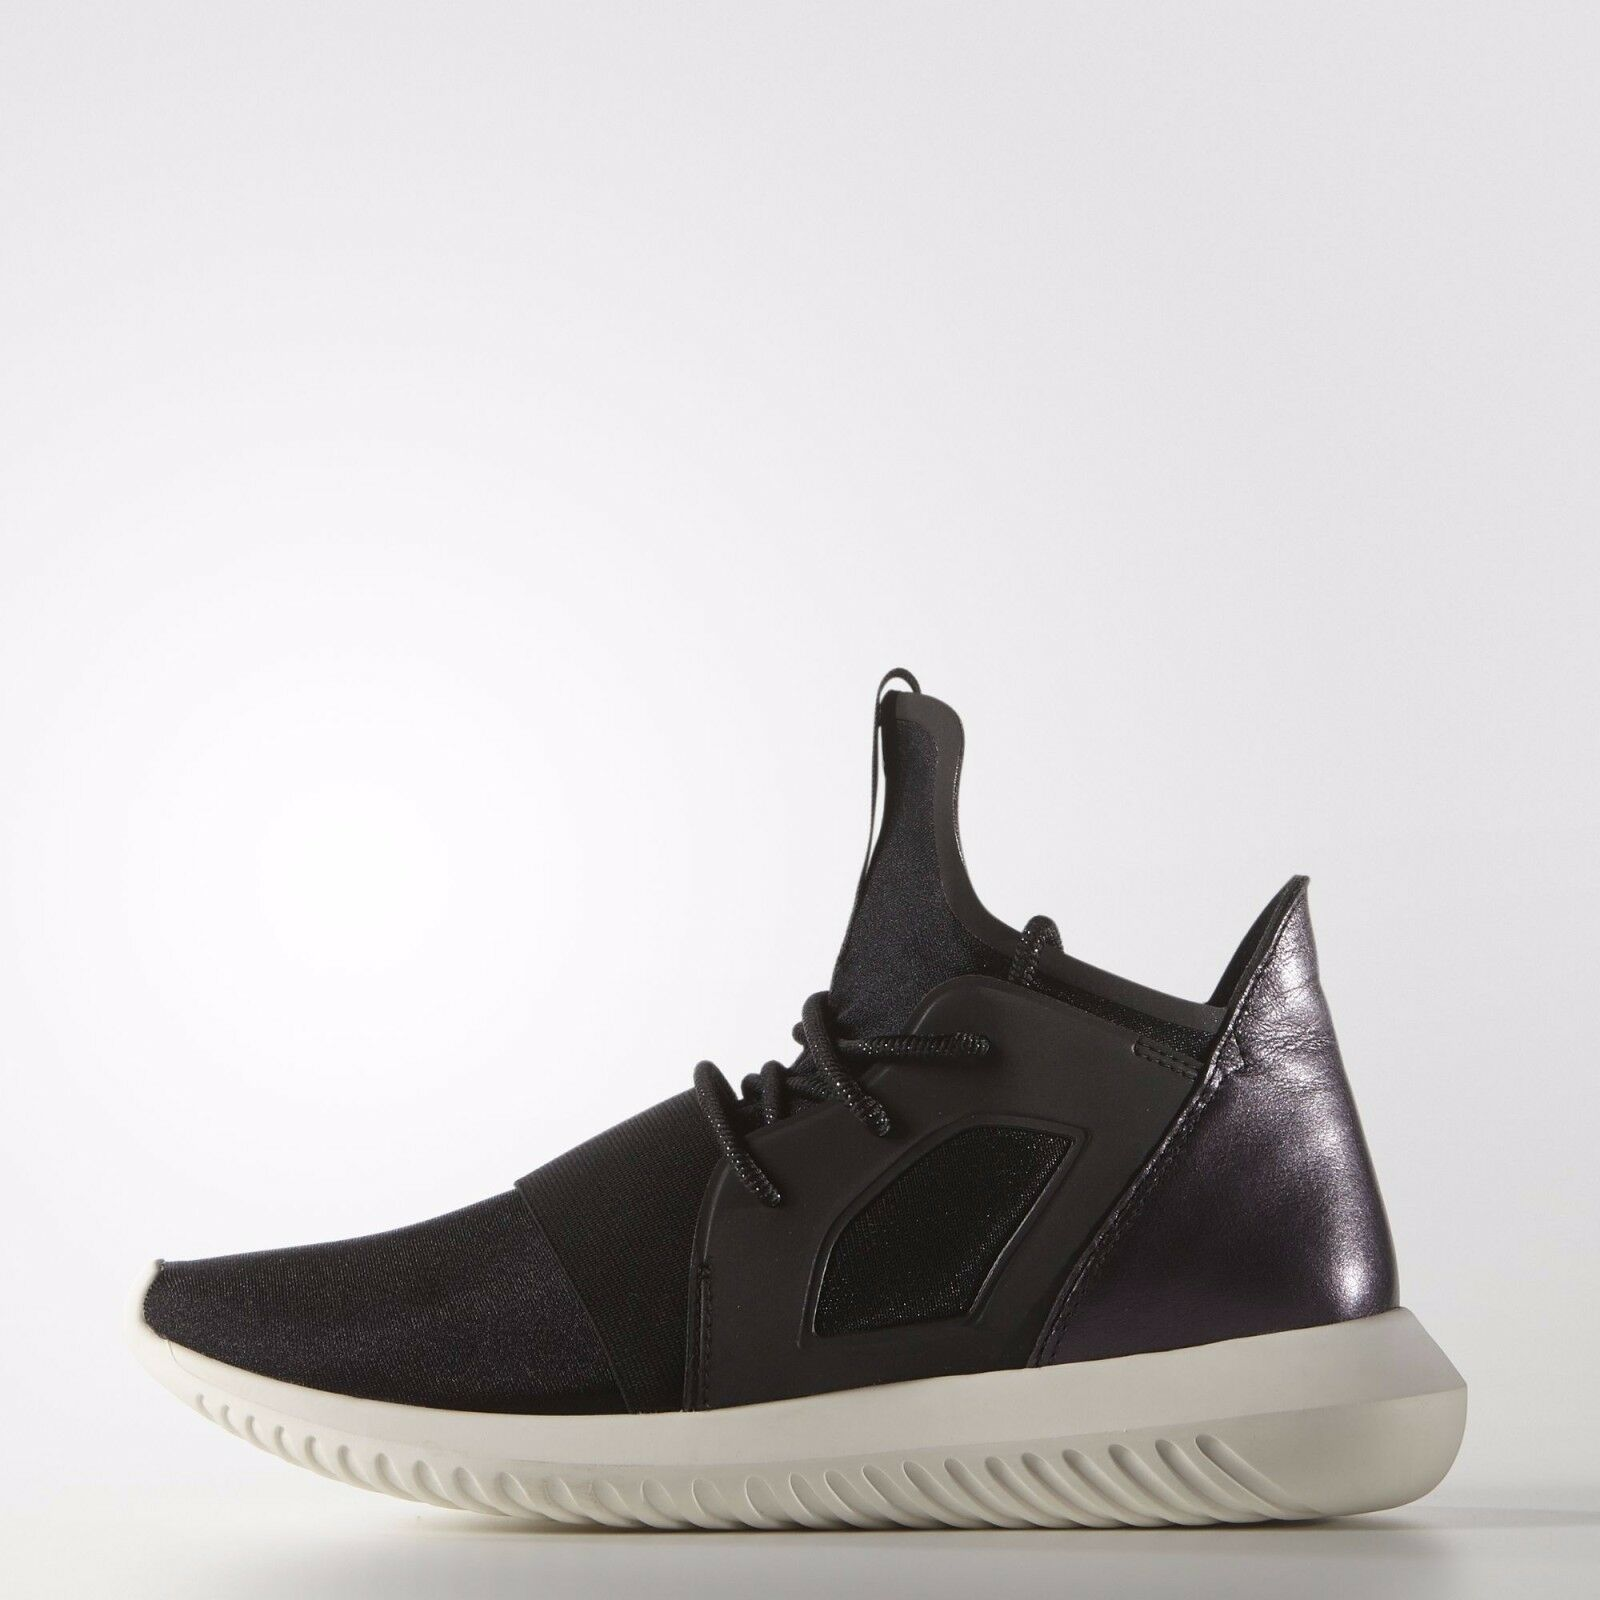 ADIDAS ORIGINALS SIZE TUBULAR DEFIANT WOMEN'S SHOES SIZE ORIGINALS US 9 BLACK S75896 abfa31